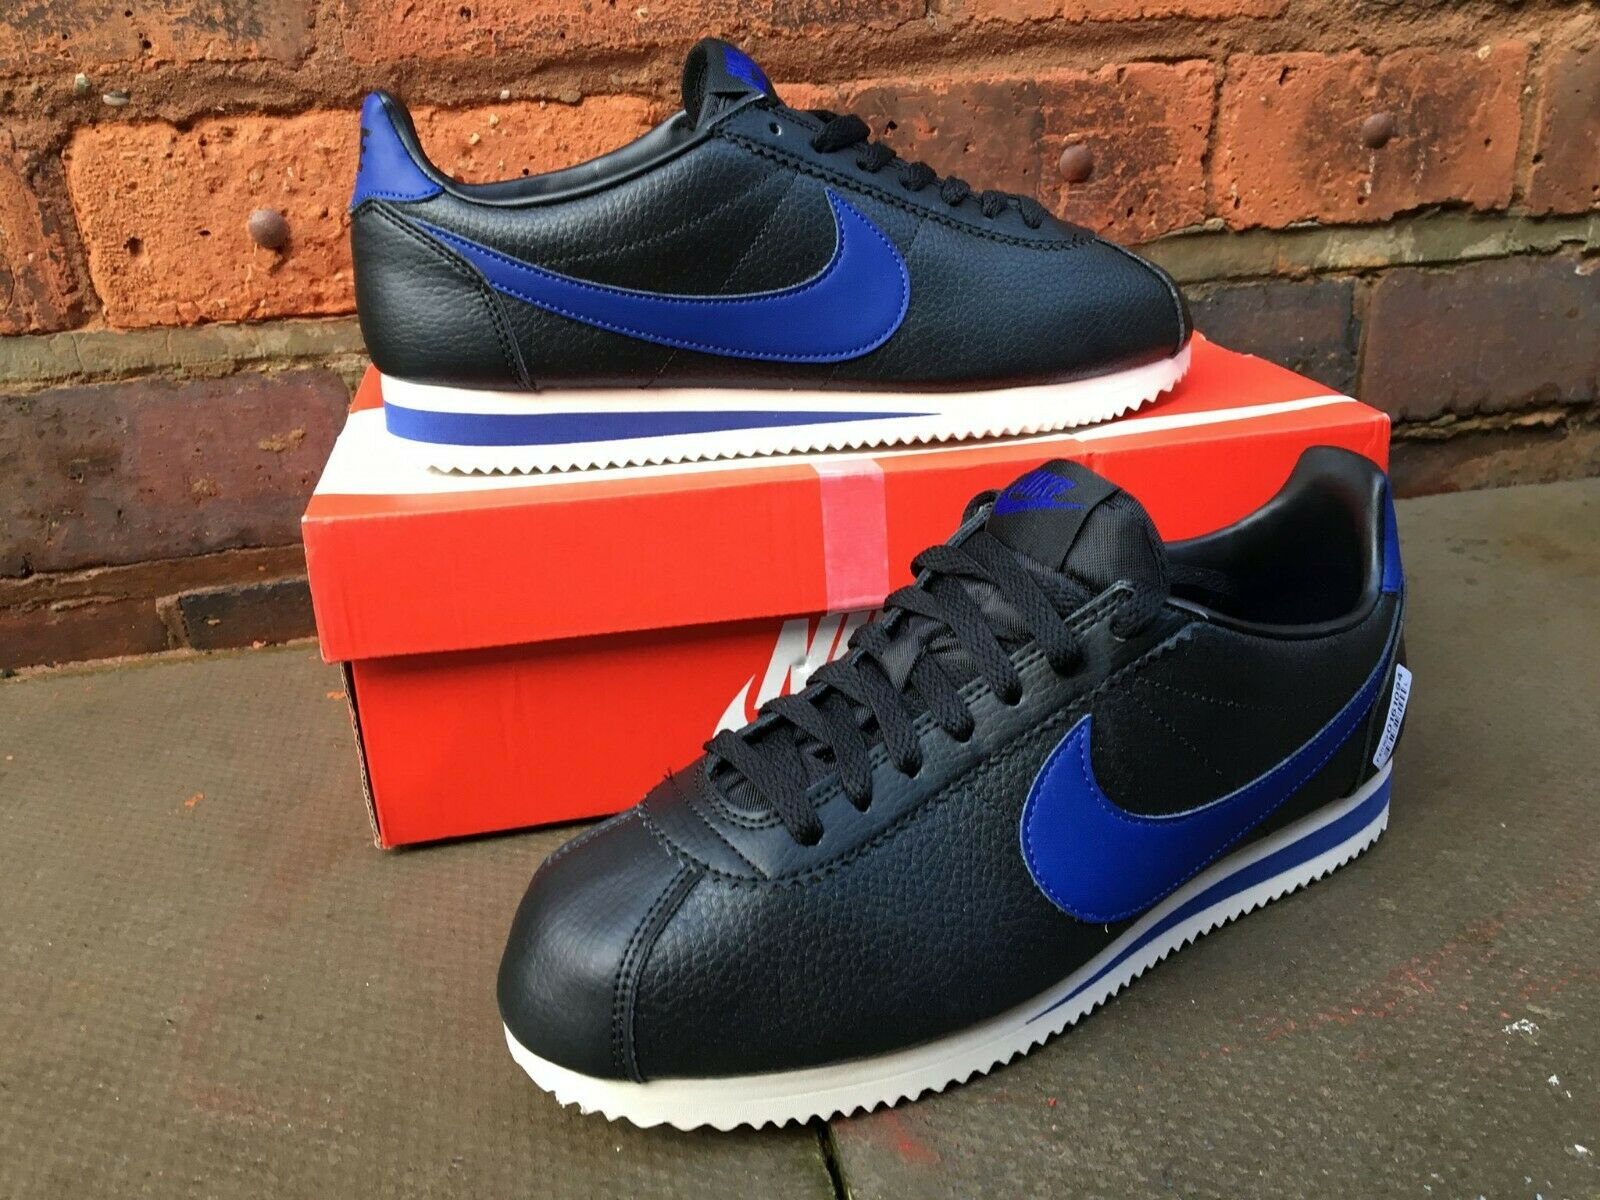 NIKE CLASSIC CORTEZ LEATHER Talla UE 42.5 45 Negro Nuevo 100% authentice